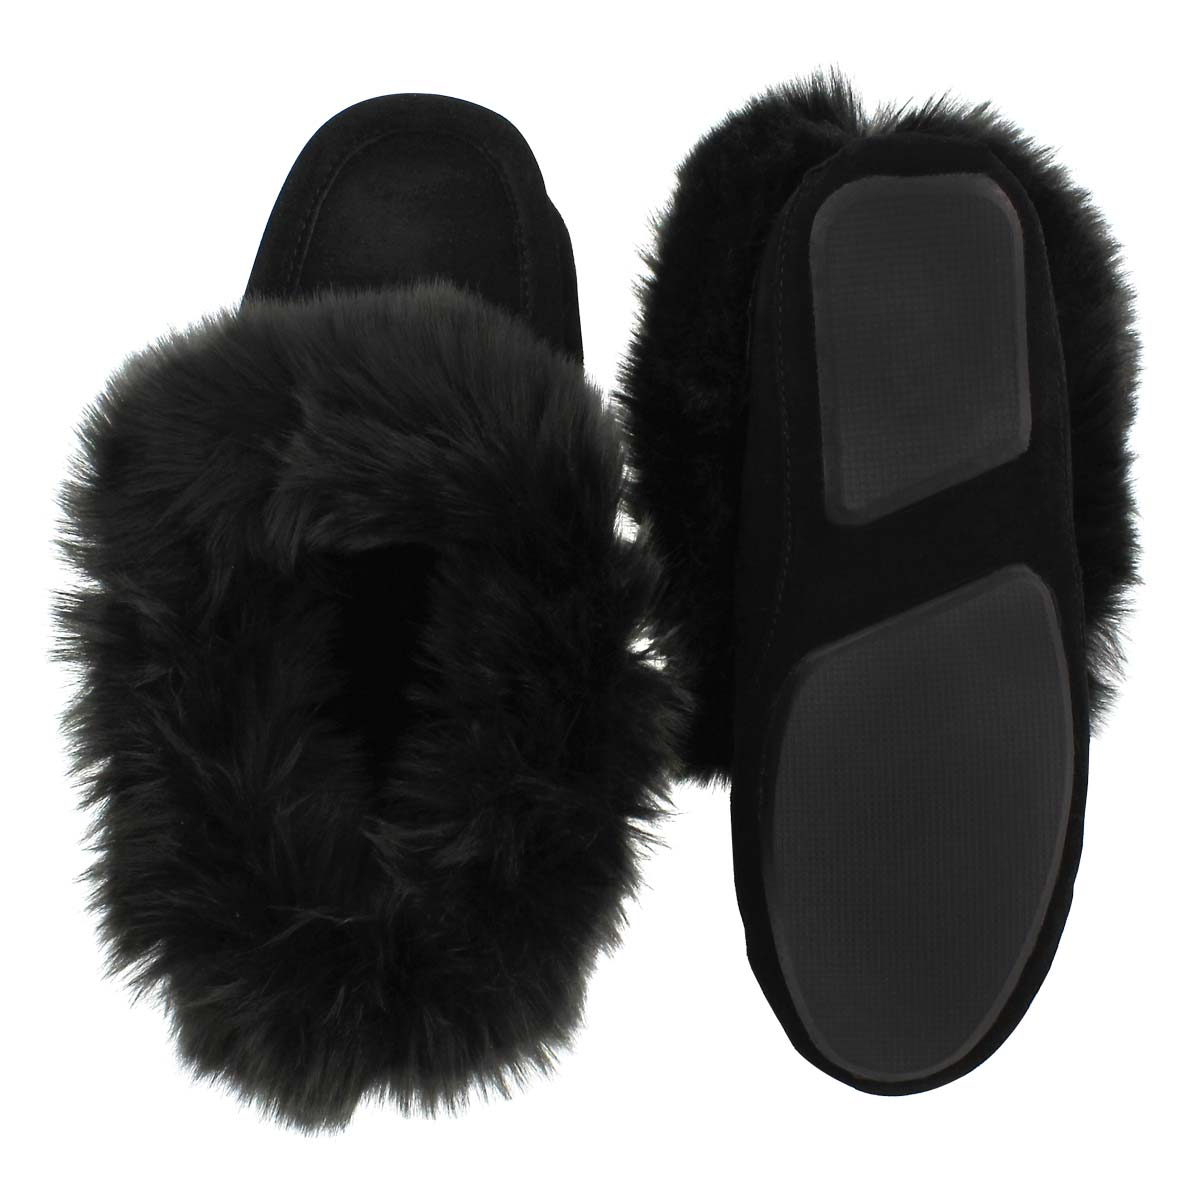 Lds Too Cute black lined moccasin